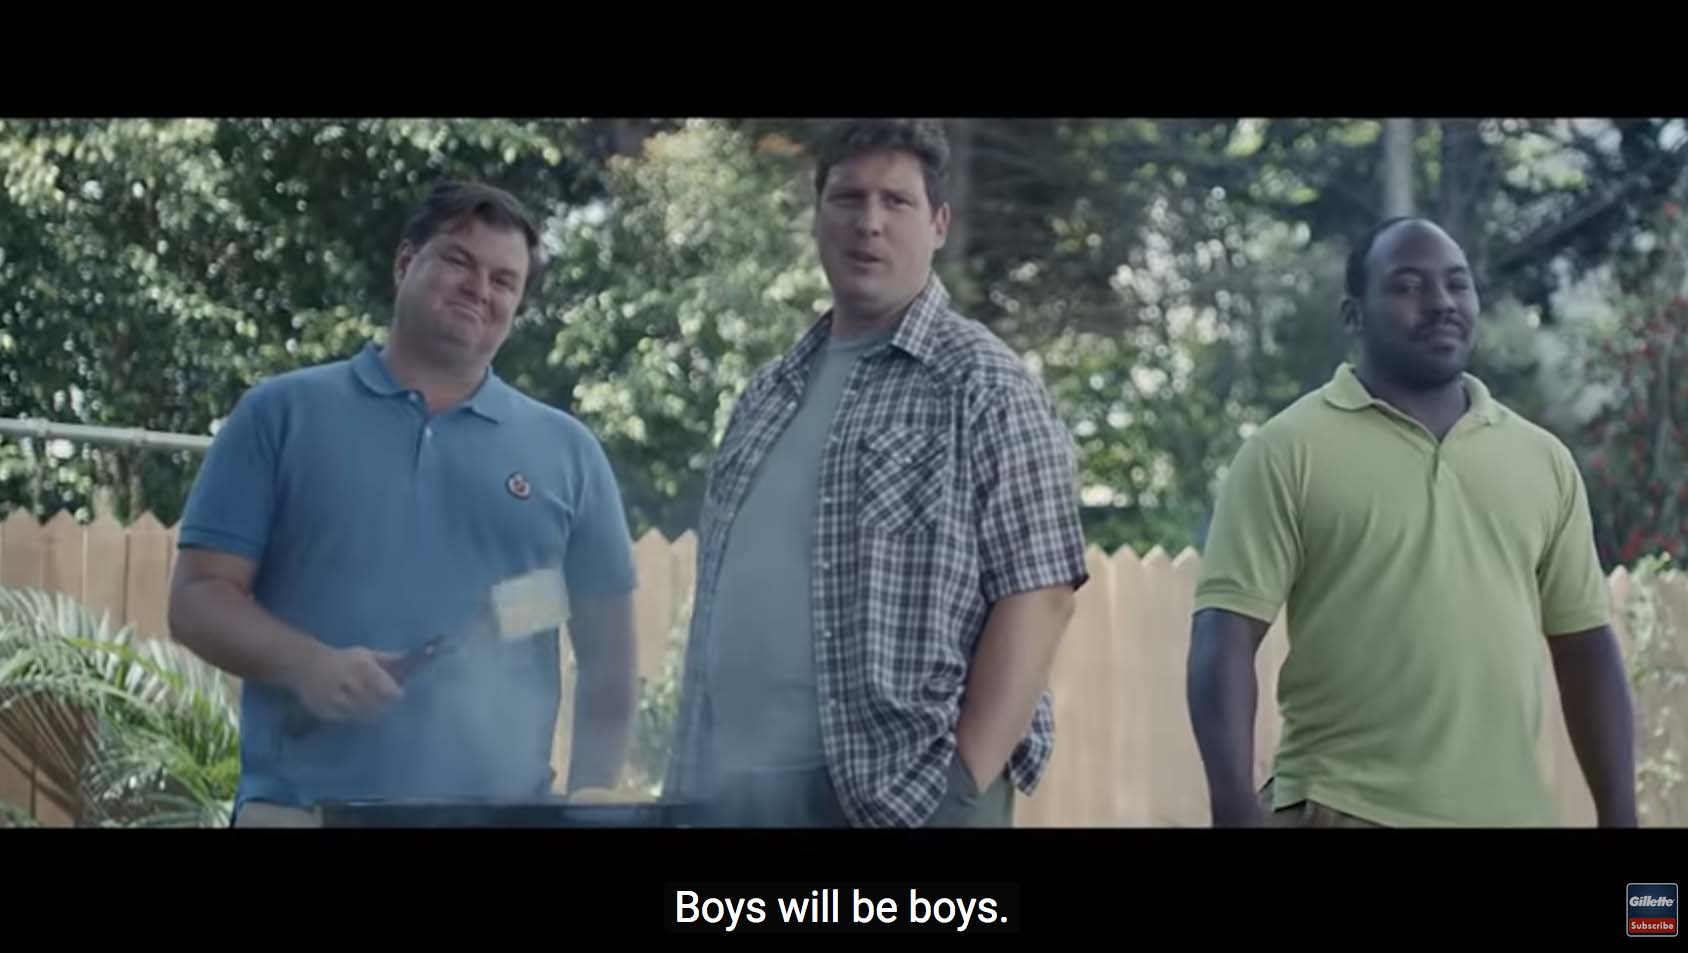 Sean Boyle: Why The New Gillette Commercial is Likely to be Nothing More Than a Flash in The Pan